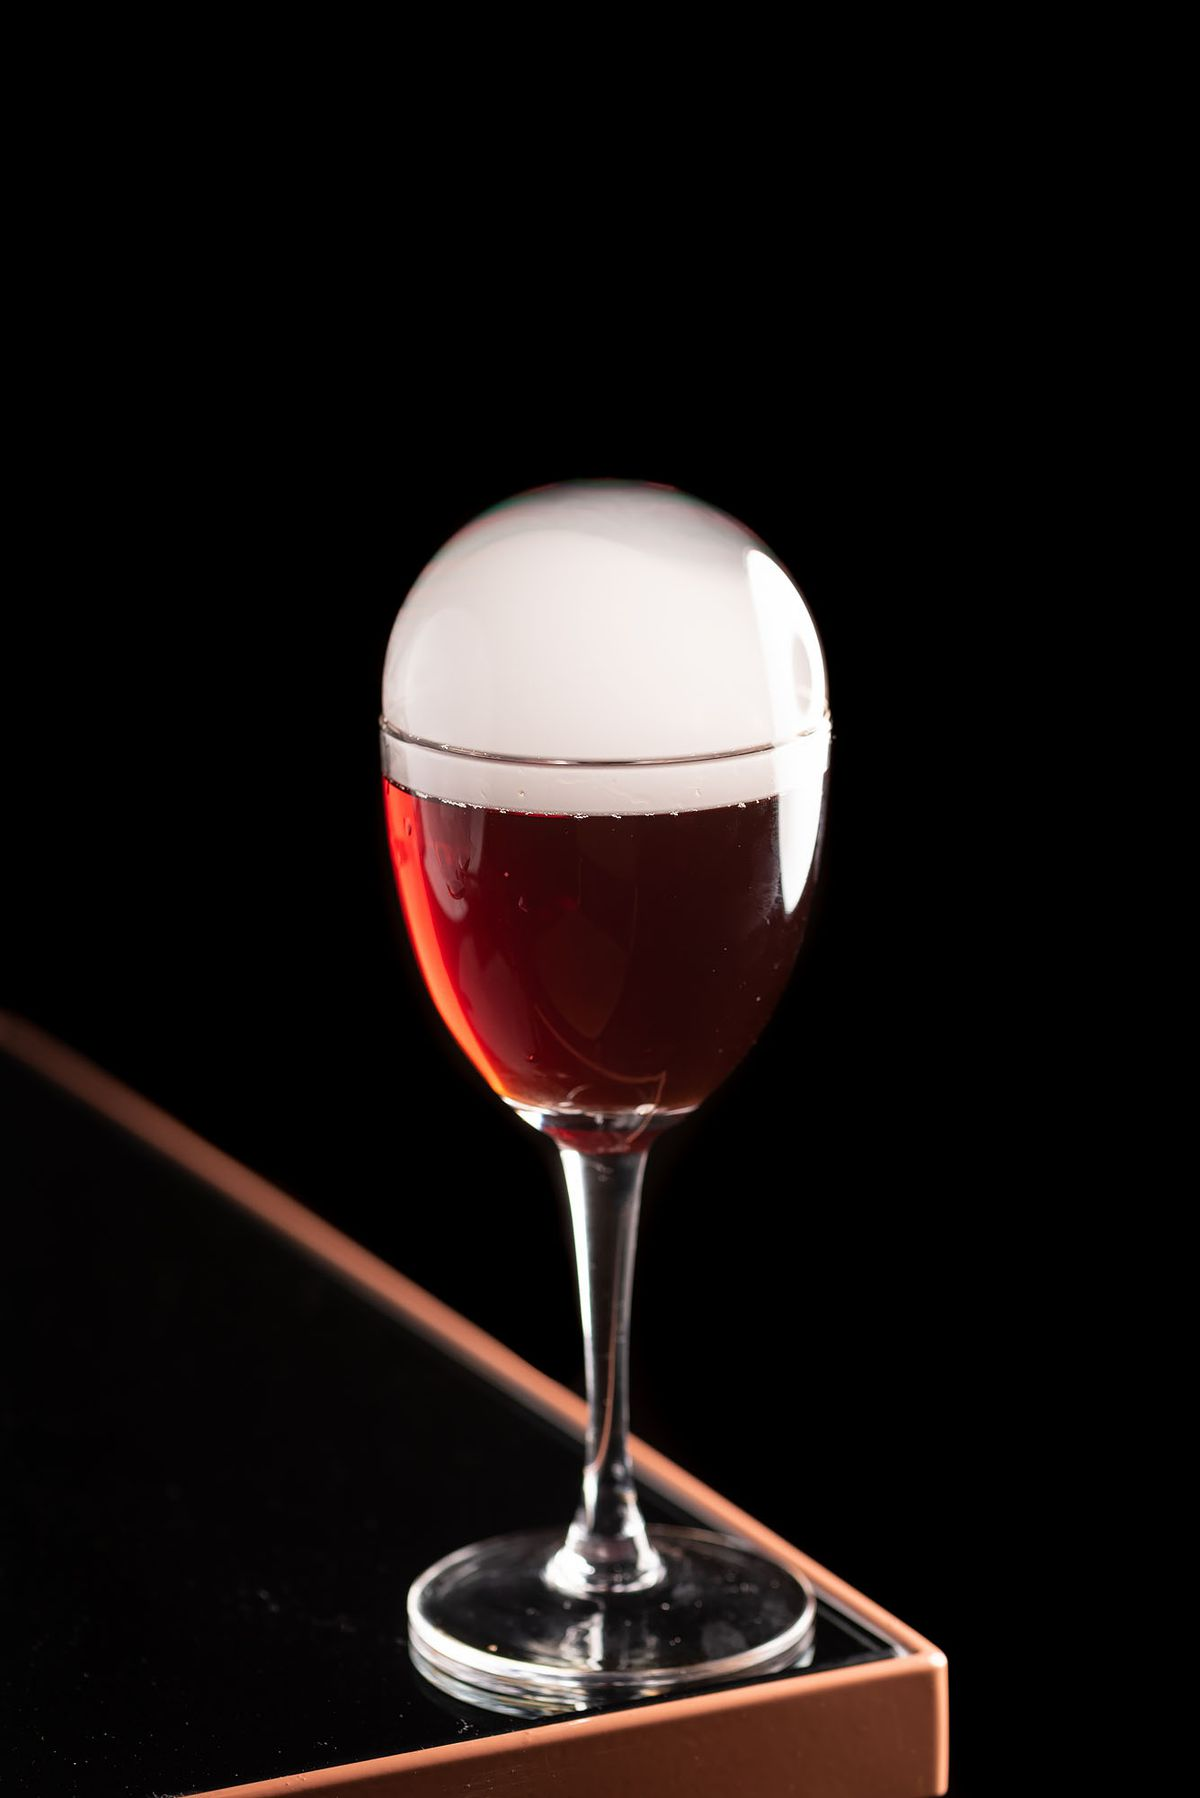 A deep red cocktail glass with a smoke foam dome on top.